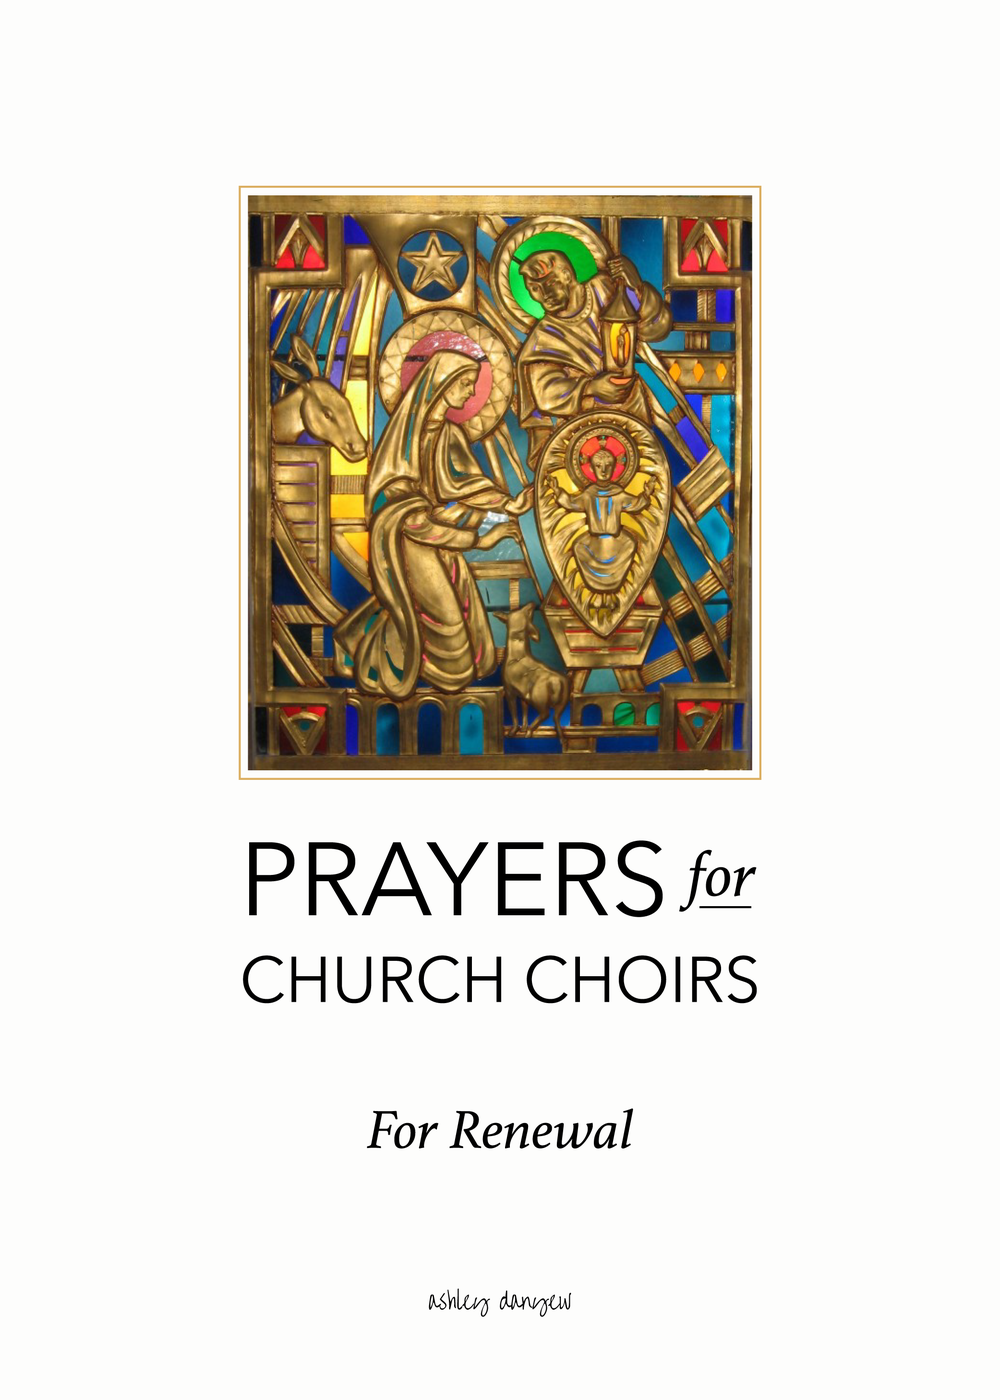 Copy of Prayers for Church Choirs: For Renewal